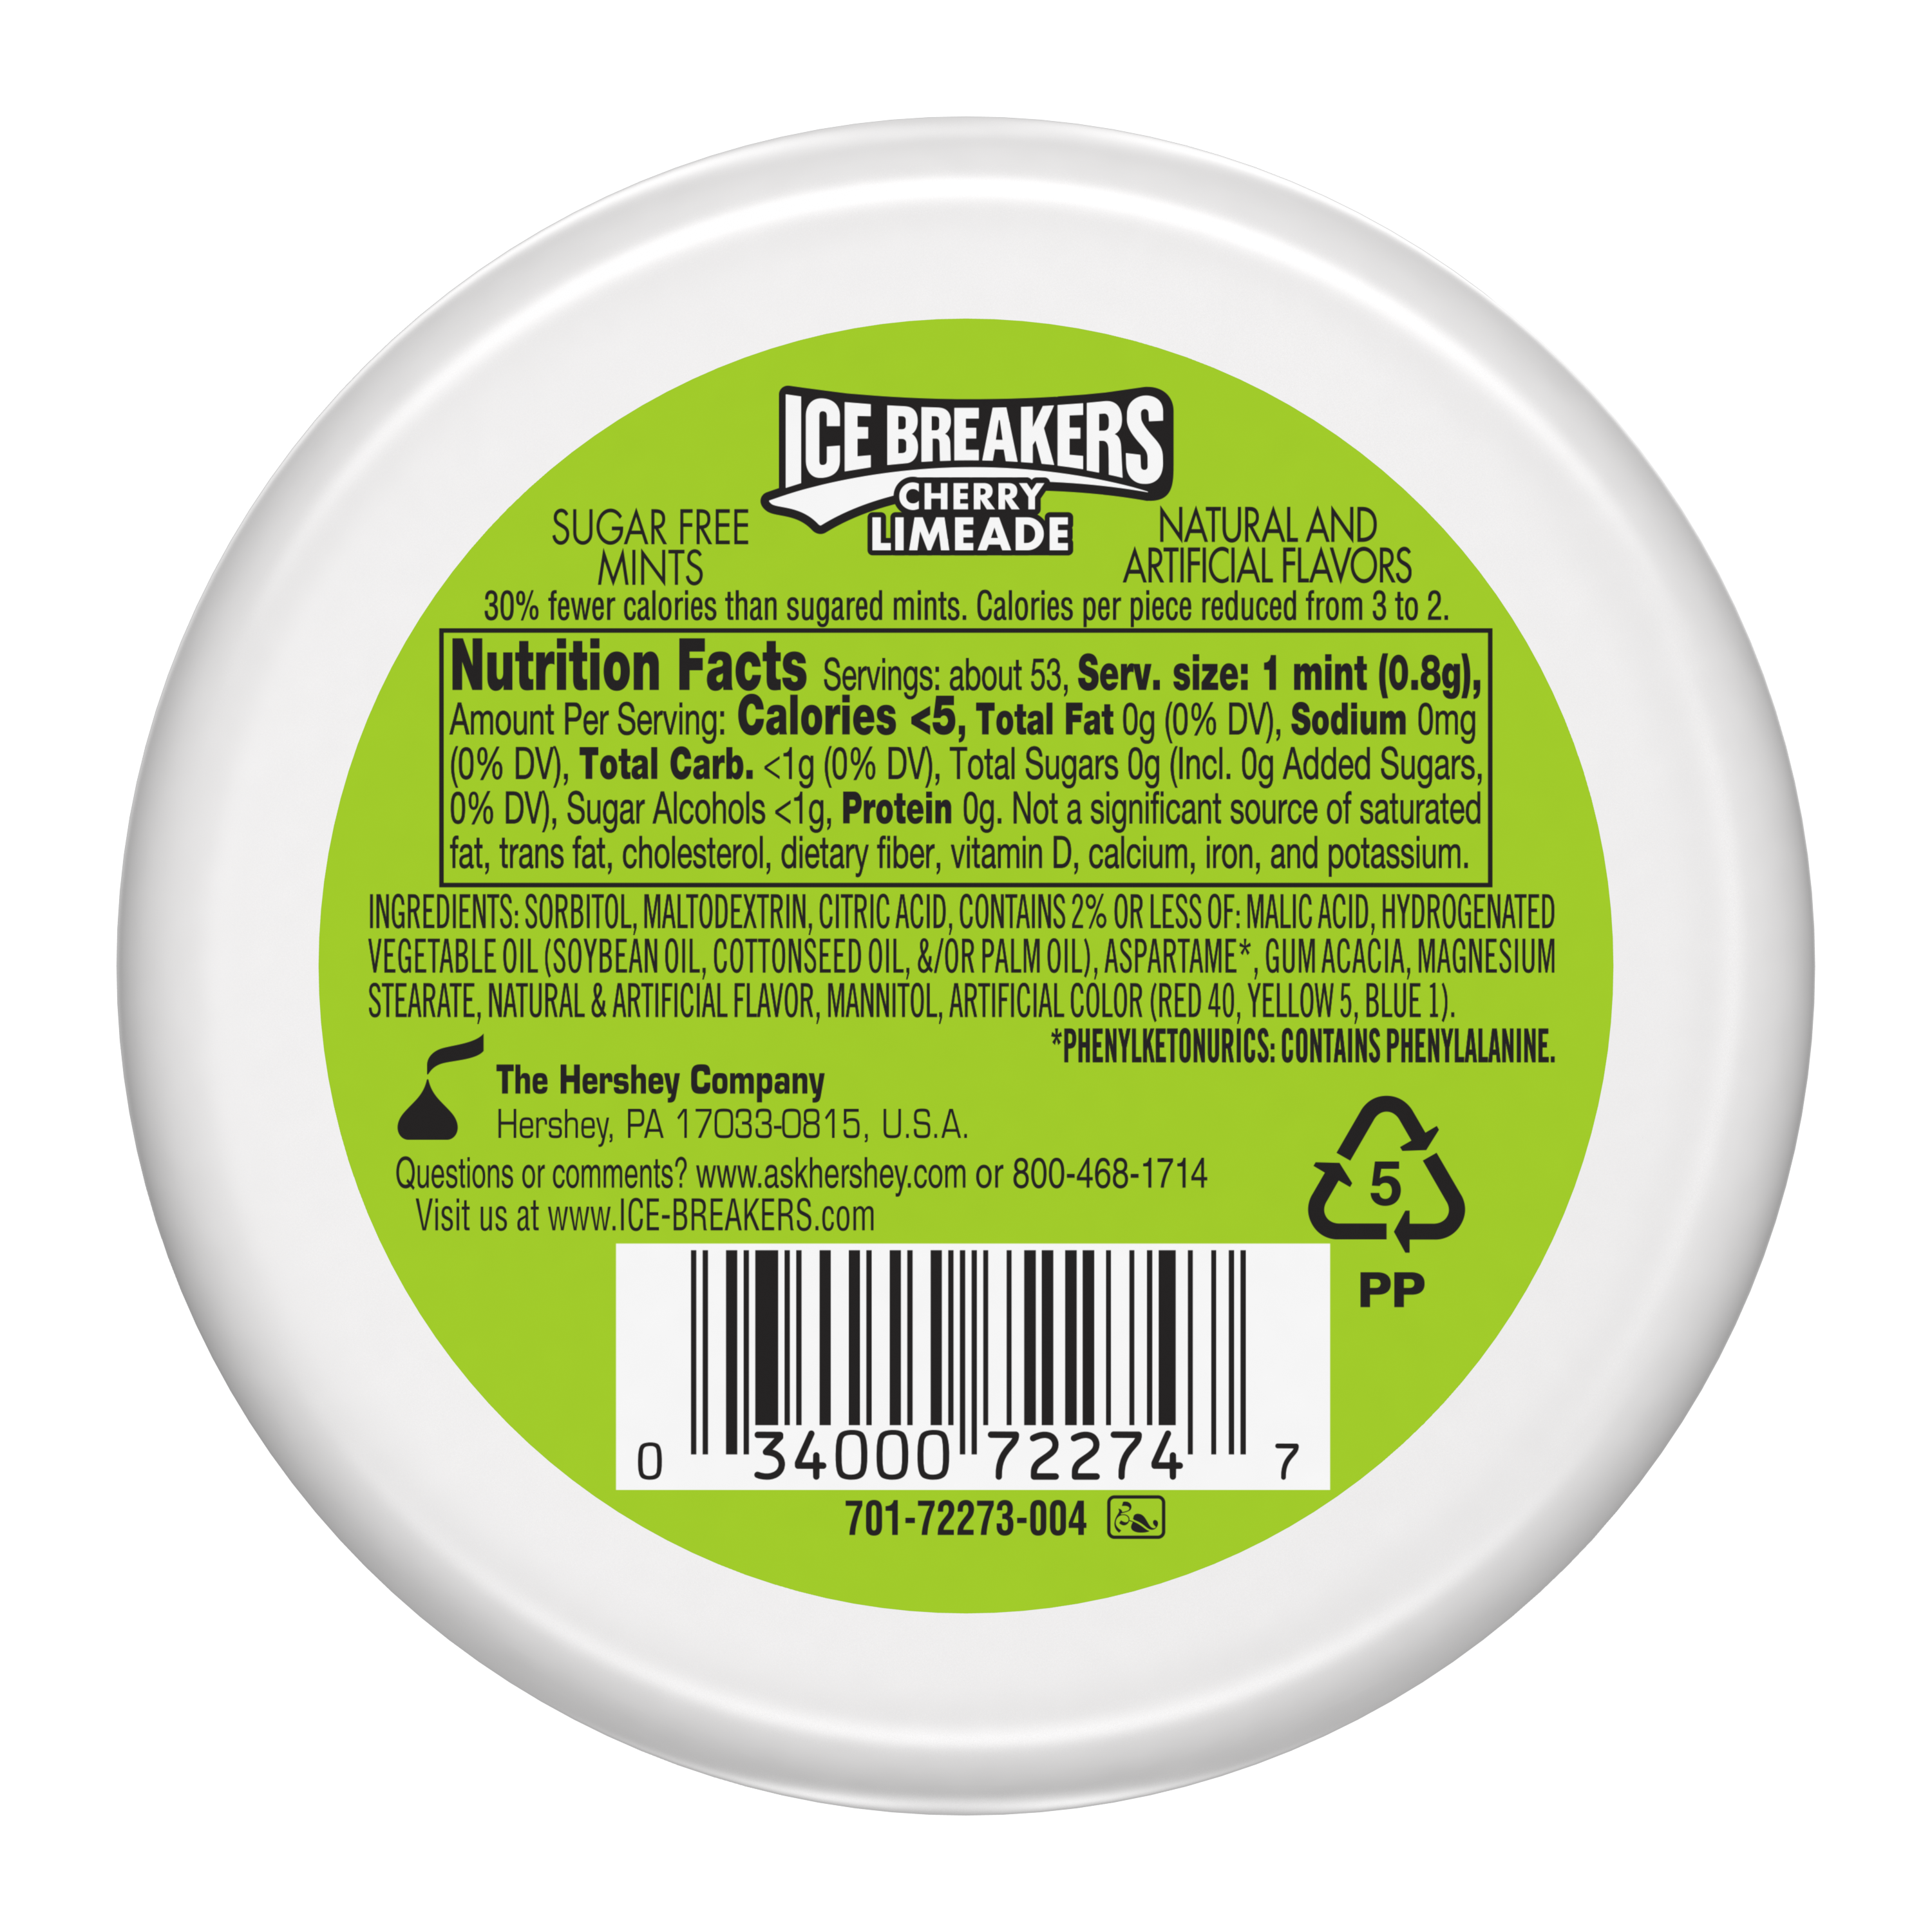 ICE BREAKERS Cherry Limeade Sugar Free Mints, 1.5 oz puck - Back of Package